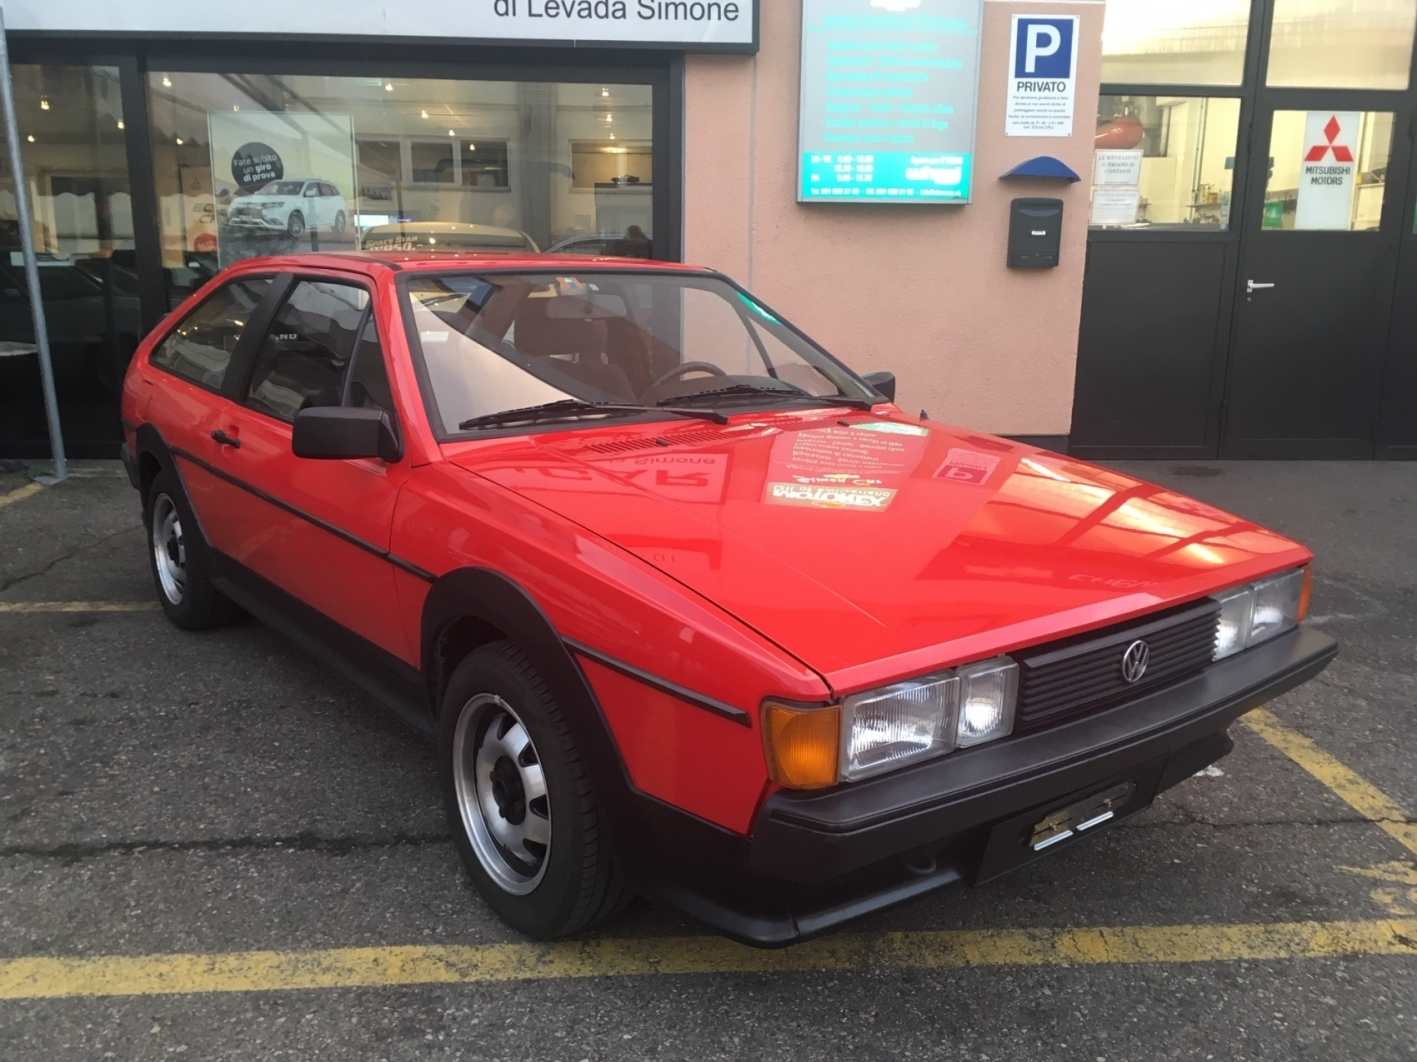 VW Scirocco 1800 GT